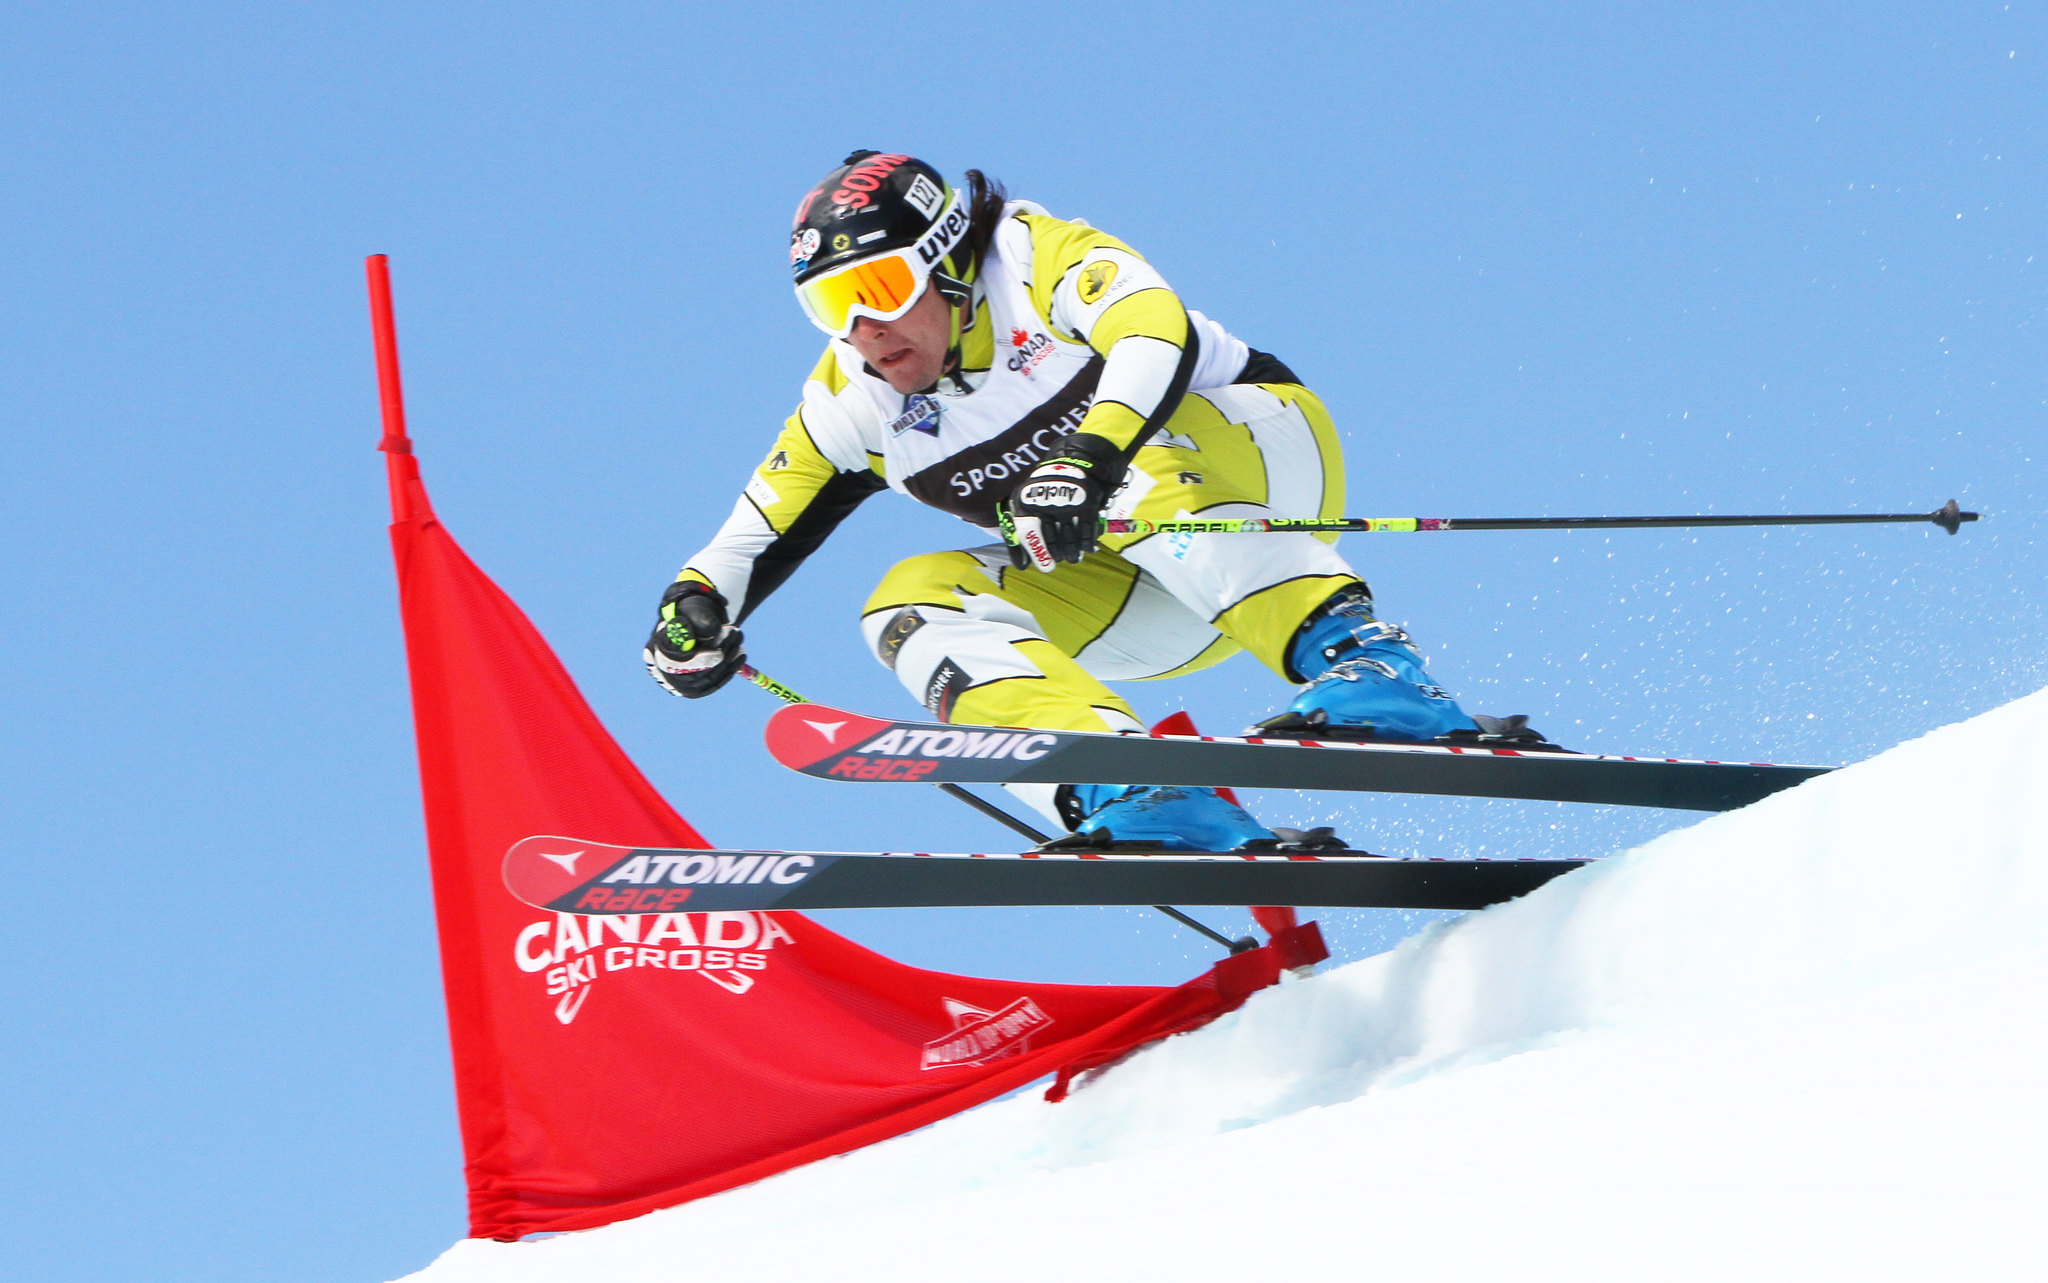 Tristan Tafel getting ready for some air during the Sport Chek Ski Cross Canadian Open in Nakiska.